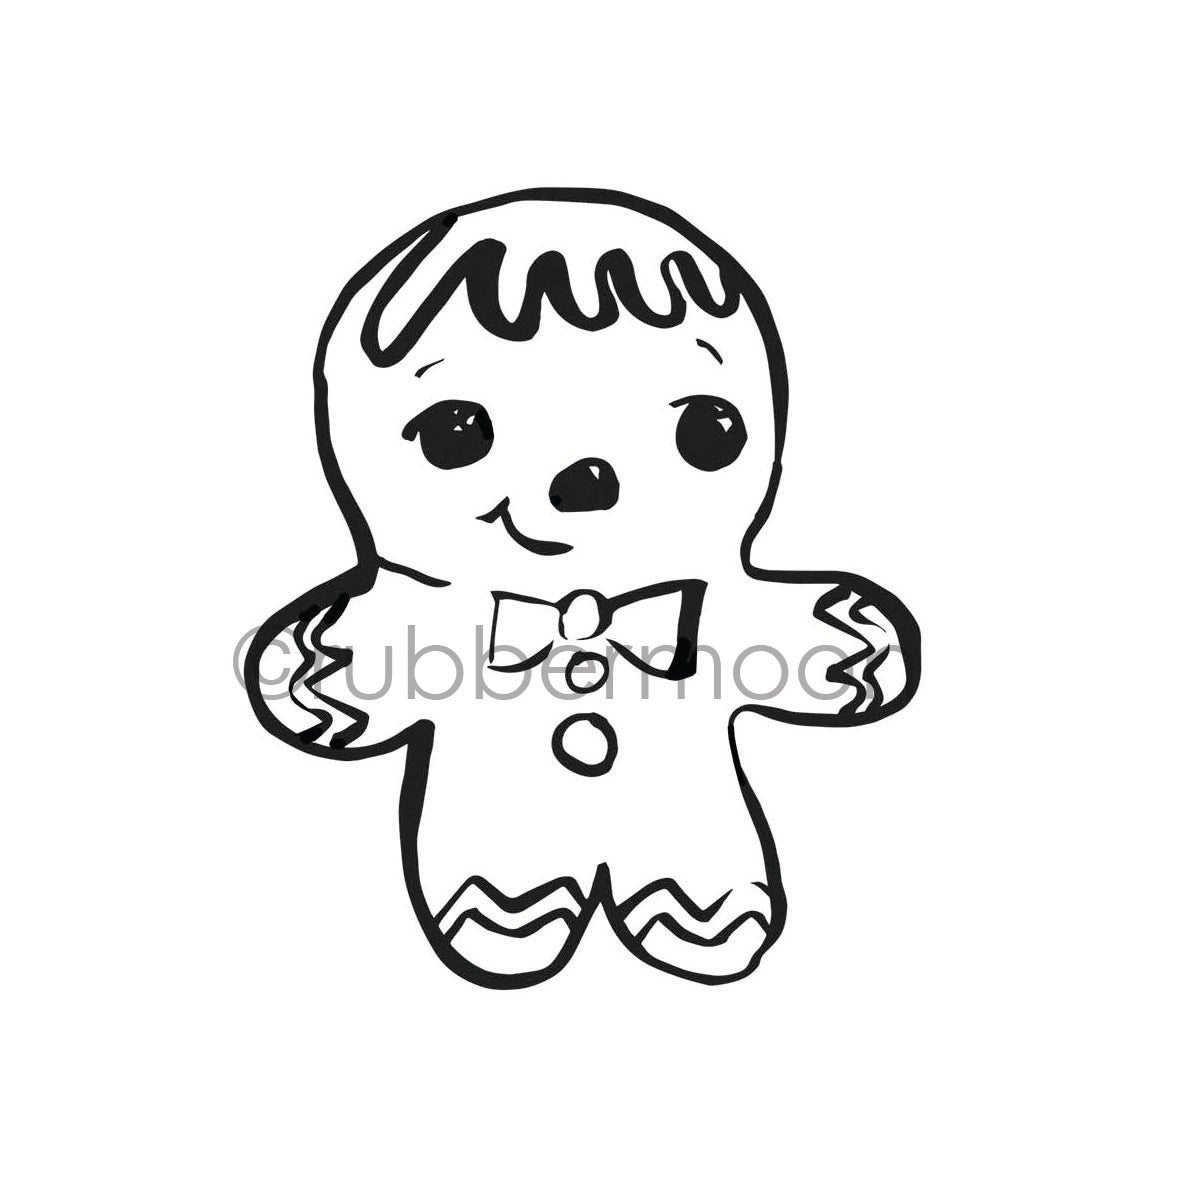 Mindy Lacefield | ML7251H - Ginger Dude - Rubber Art Stamp